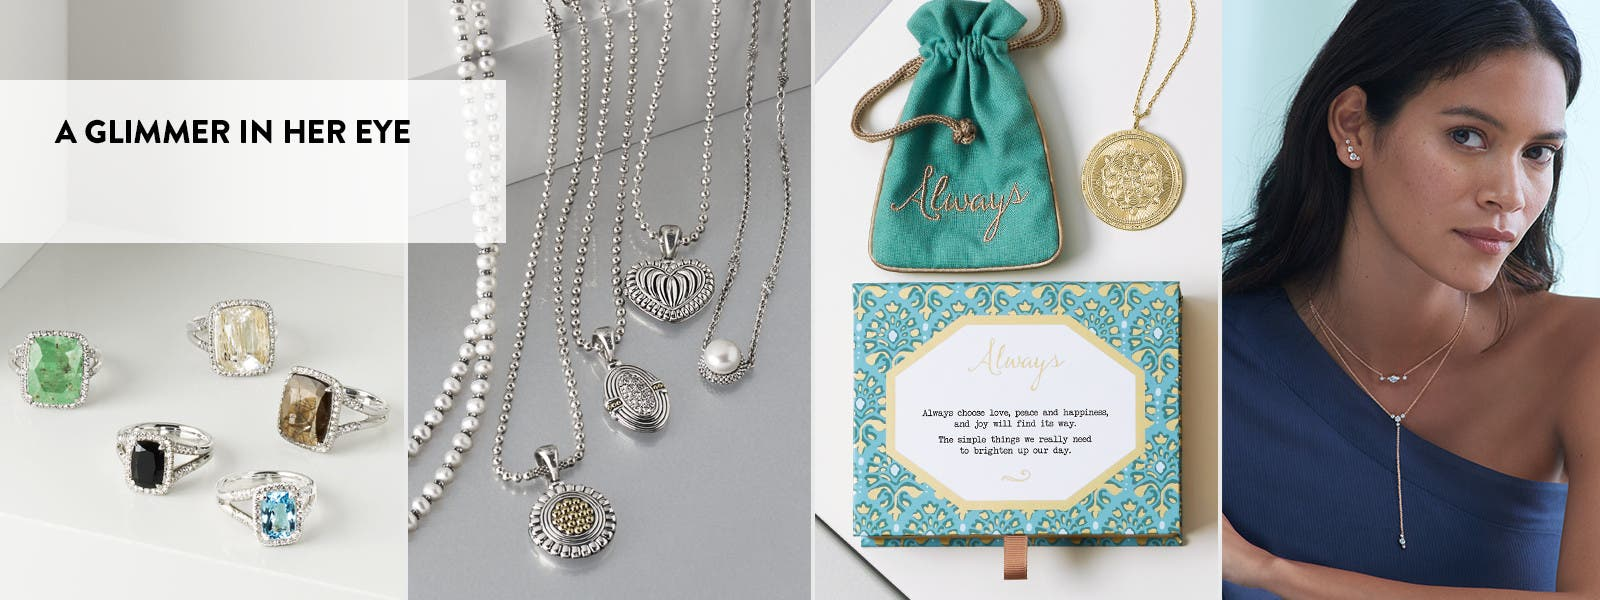 A glimmer in her eye: Mother's Day gifts.